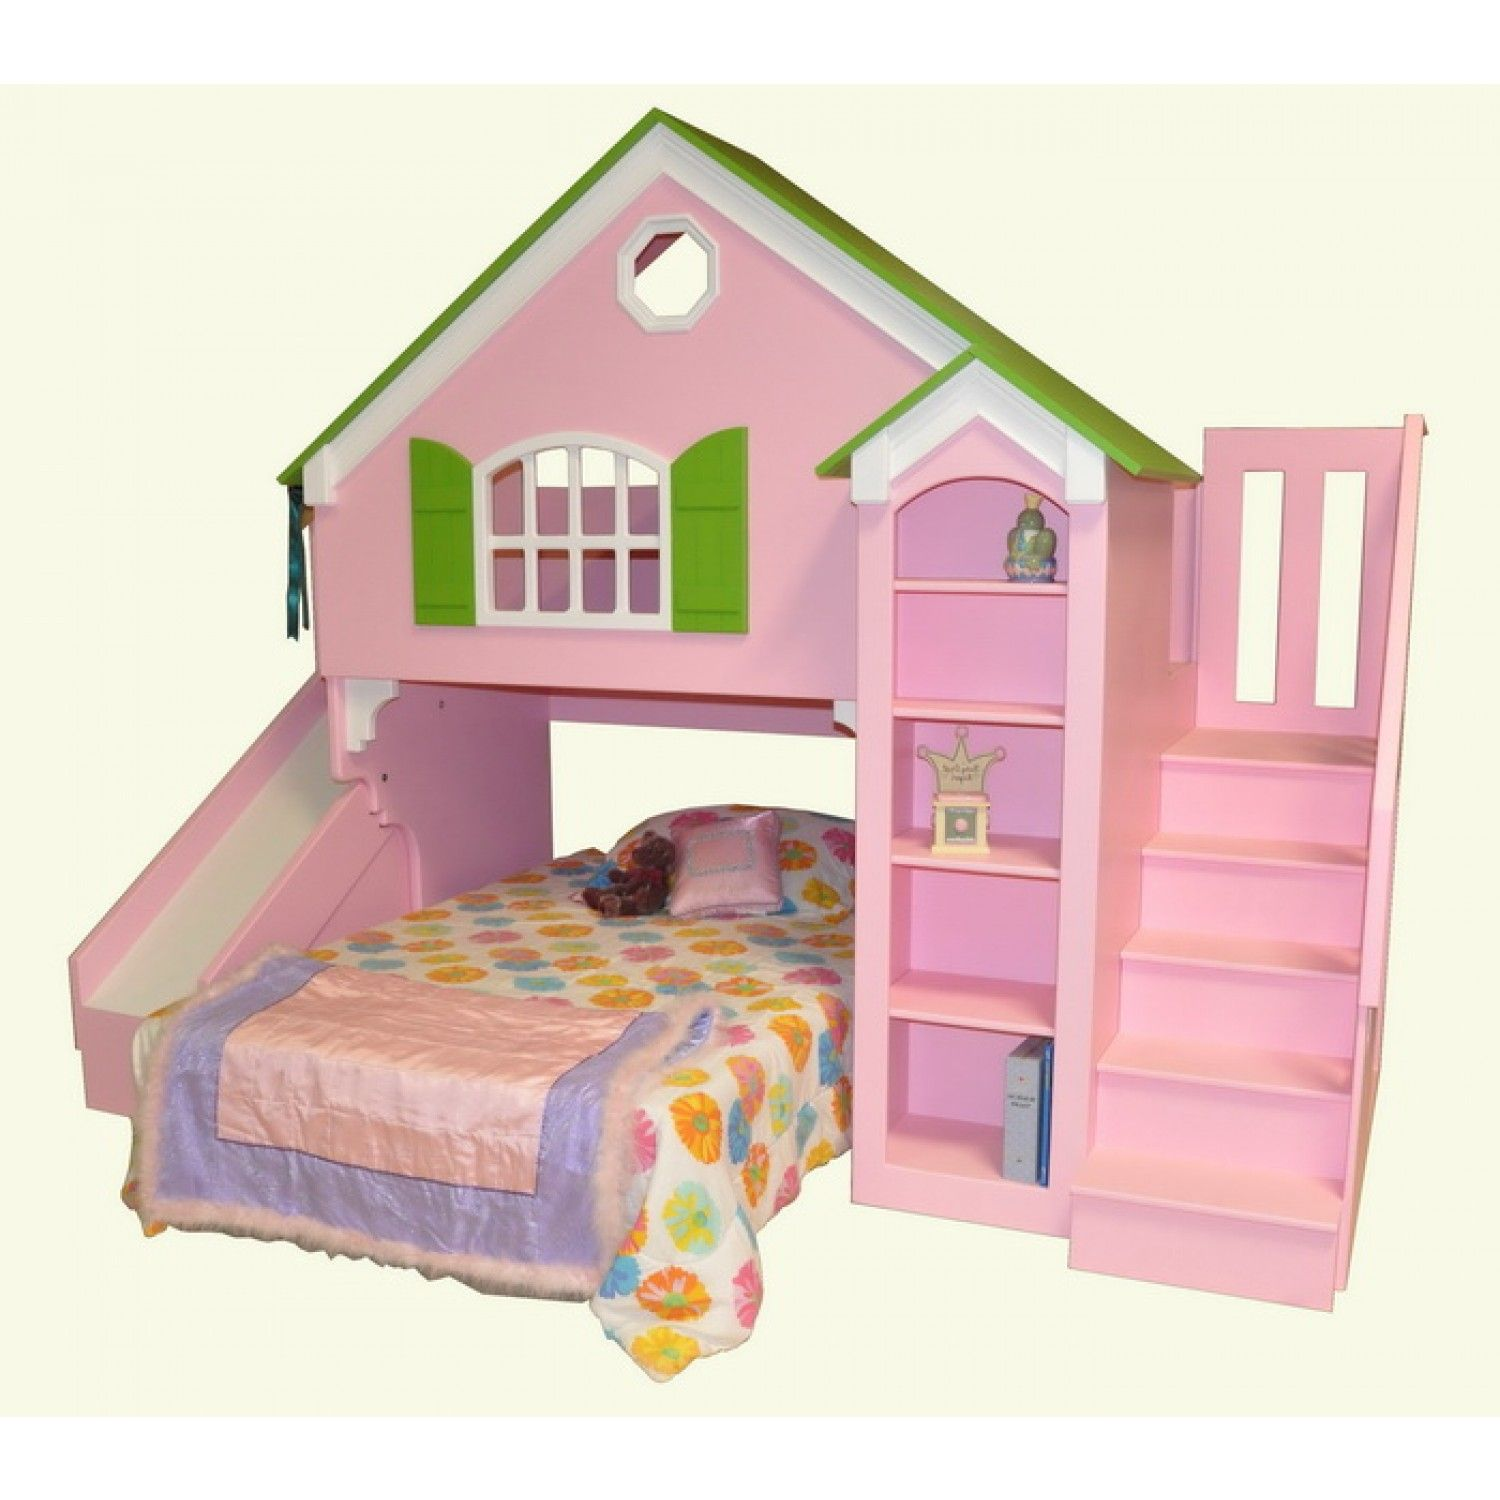 Bunk beds with slide and stairs - Cool Kids Bunk Beds With Slide Dollhouse Bunk Bed Shown With Optional Slide And Staircase Best Kids Bunk Beds With Slide Cool Kids Bunk Beds With Slide